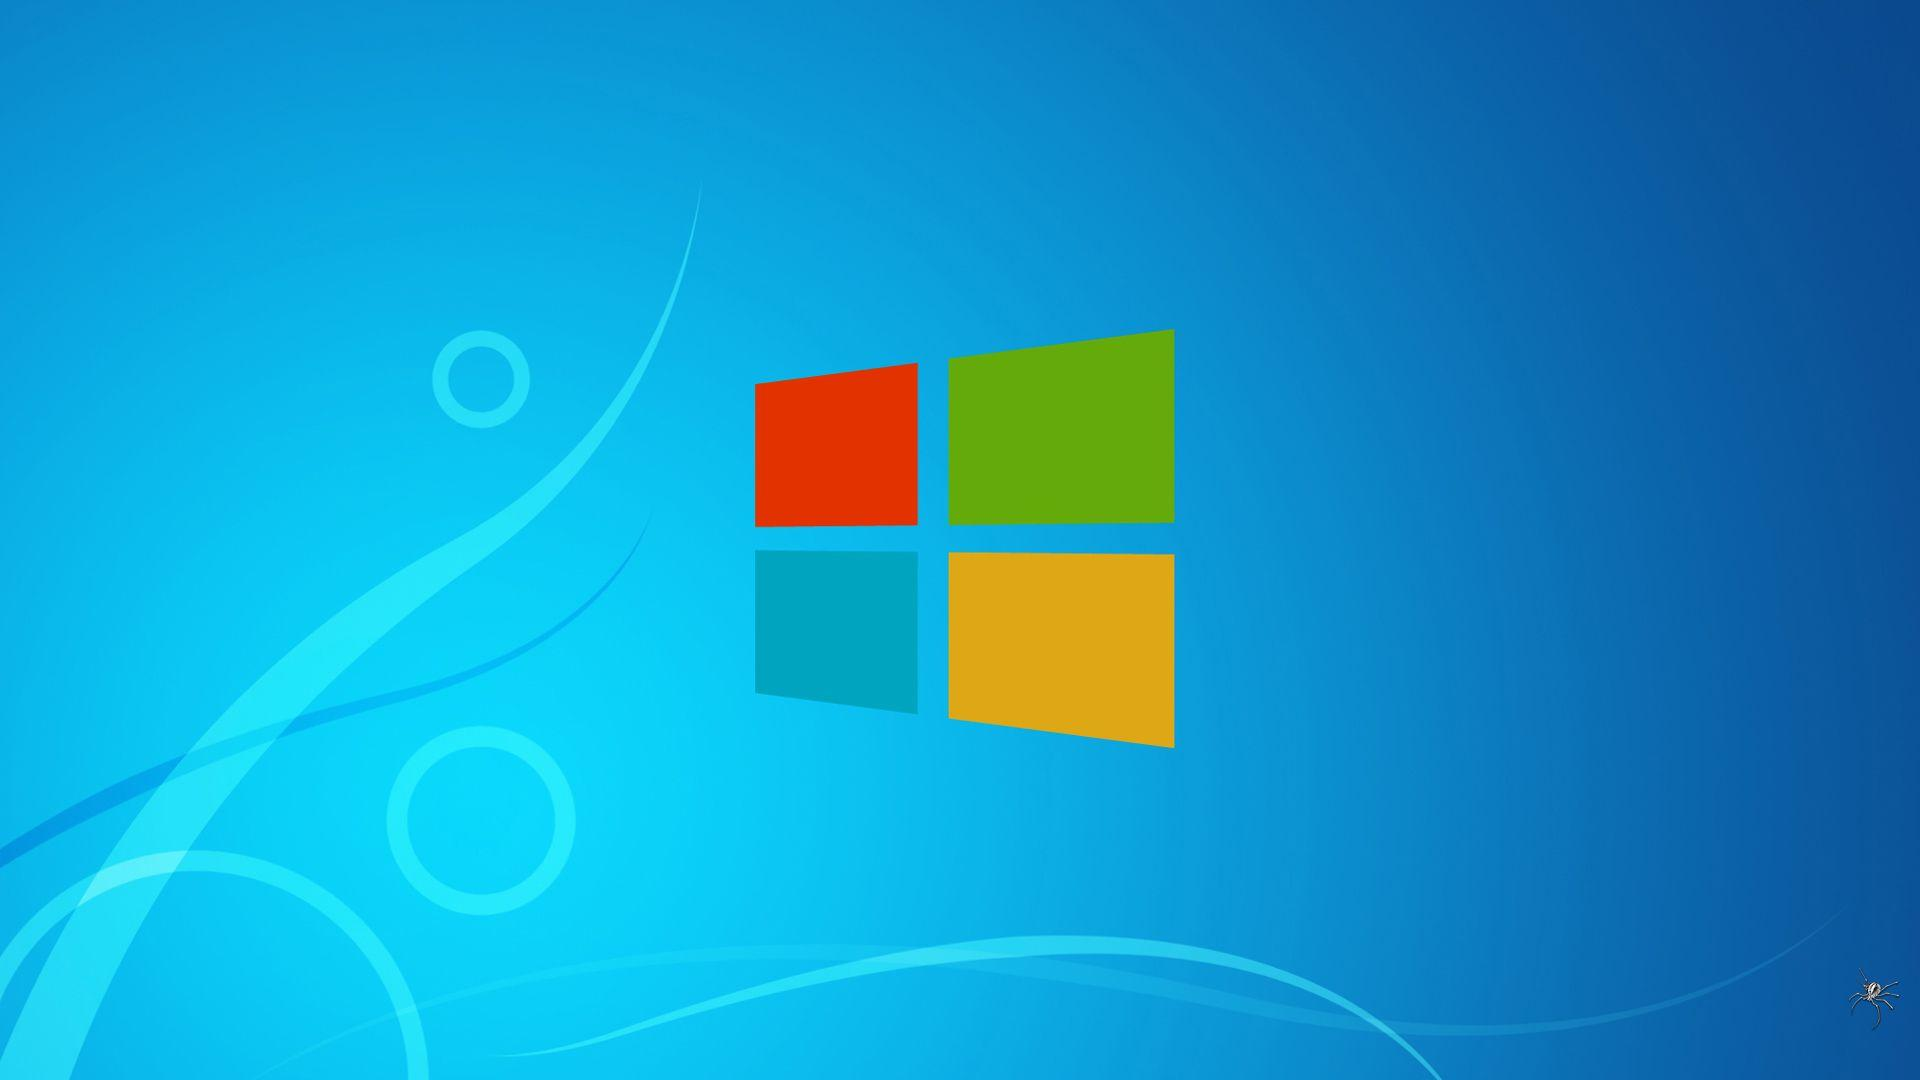 Windows 8 for gaming